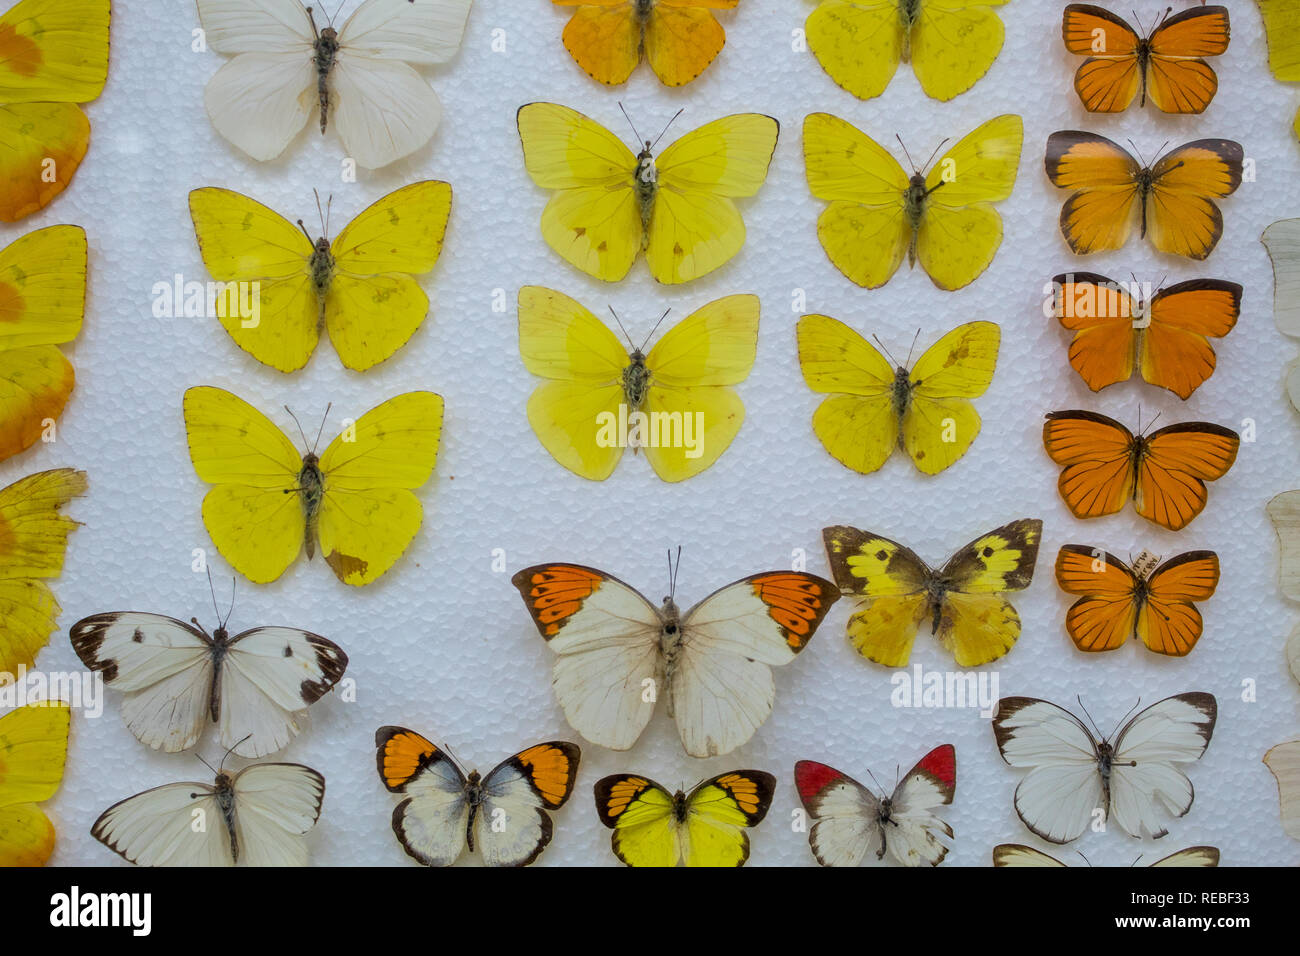 An entomological collection of yellow and orange butterflies pinned on a styrofoam base. Stock Photo